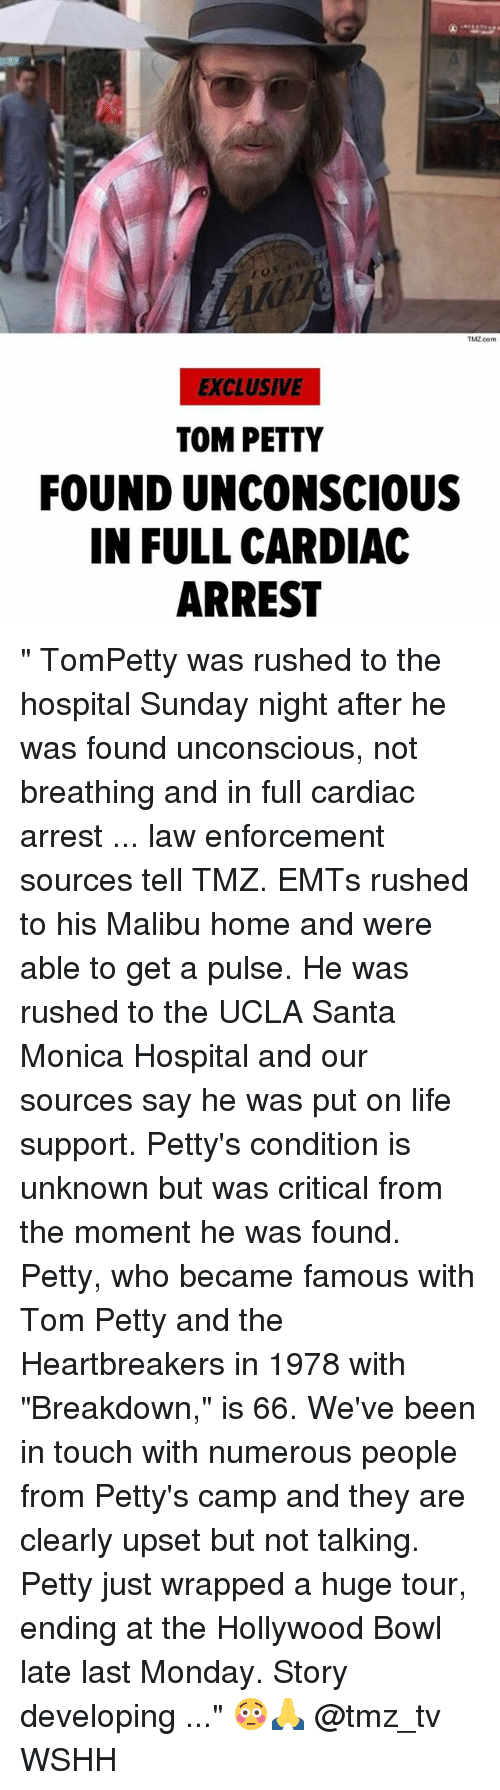 "tom petty: TMZ com  EXCLUSIVE  TOM PETTY  FOUND UNCONSCIOUS  IN FULL CARDIAC  ARREST "" TomPetty was rushed to the hospital Sunday night after he was found unconscious, not breathing and in full cardiac arrest ... law enforcement sources tell TMZ. EMTs rushed to his Malibu home and were able to get a pulse. He was rushed to the UCLA Santa Monica Hospital and our sources say he was put on life support. Petty's condition is unknown but was critical from the moment he was found. Petty, who became famous with Tom Petty and the Heartbreakers in 1978 with ""Breakdown,"" is 66. We've been in touch with numerous people from Petty's camp and they are clearly upset but not talking. Petty just wrapped a huge tour, ending at the Hollywood Bowl late last Monday. Story developing ..."" 😳🙏 @tmz_tv WSHH"